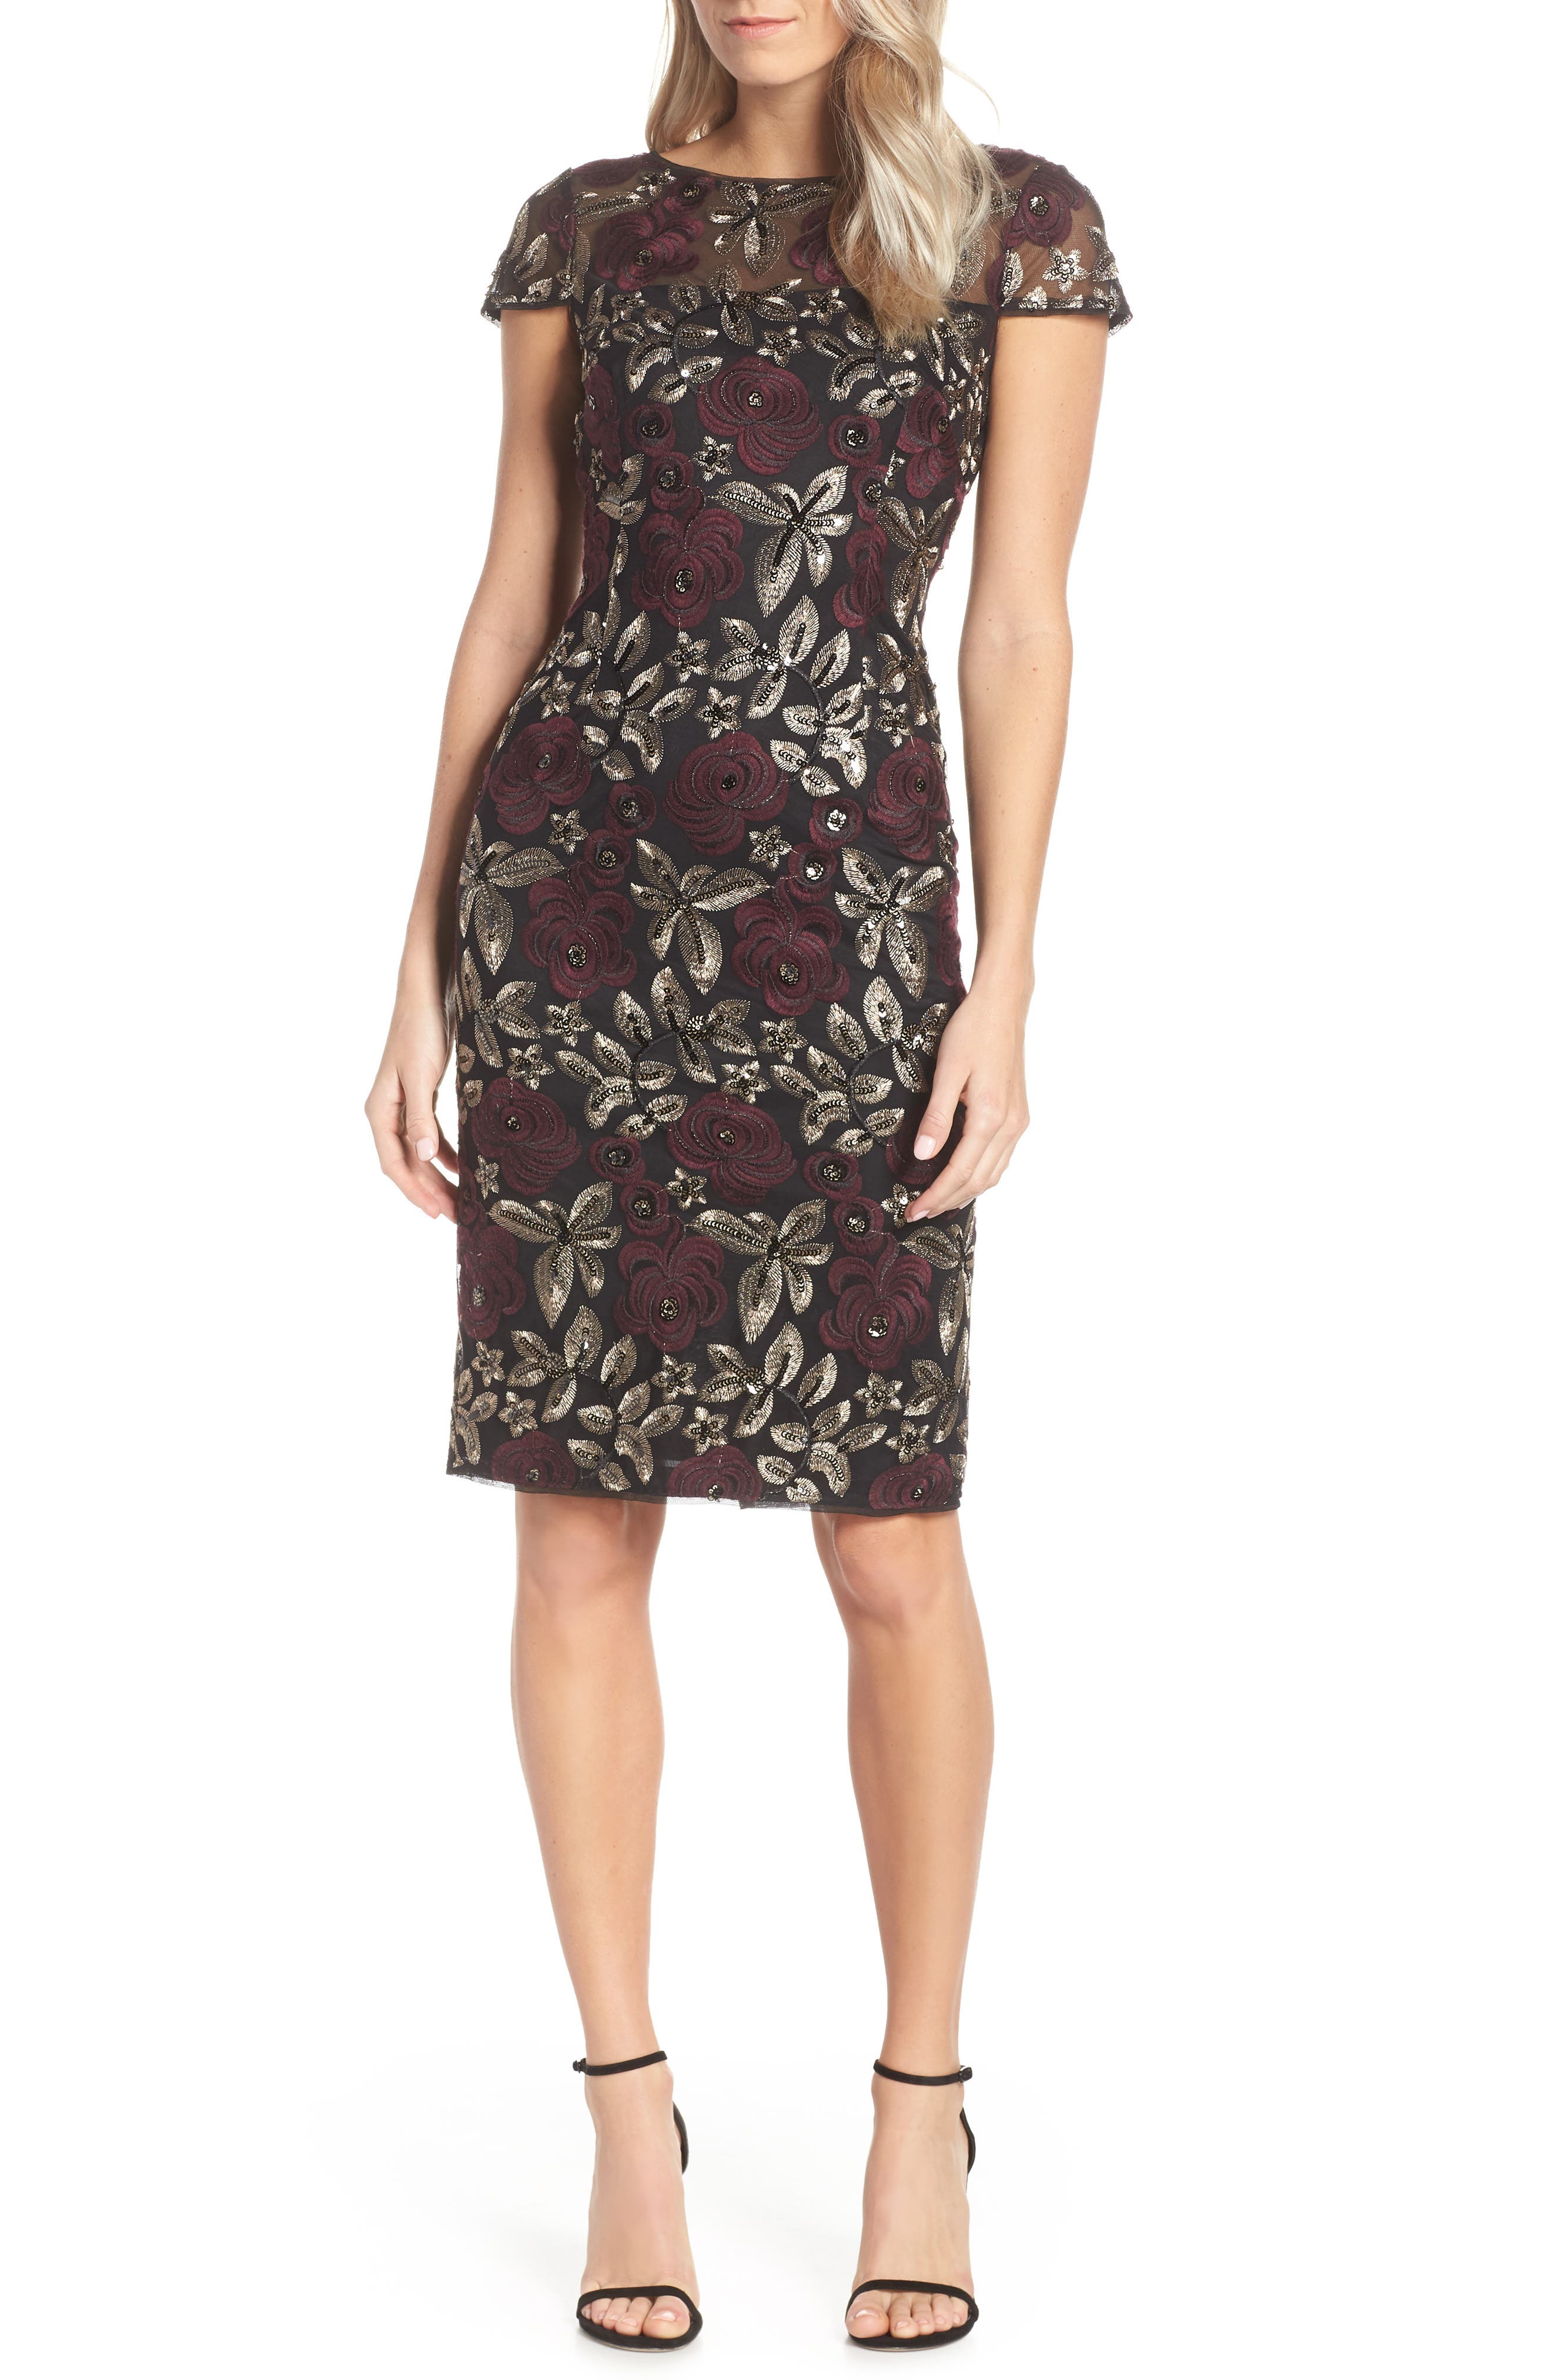 ADRIANNA PAPELL, Sequin Embroidered Cocktail Dress, Main thumbnail 1, color, 930